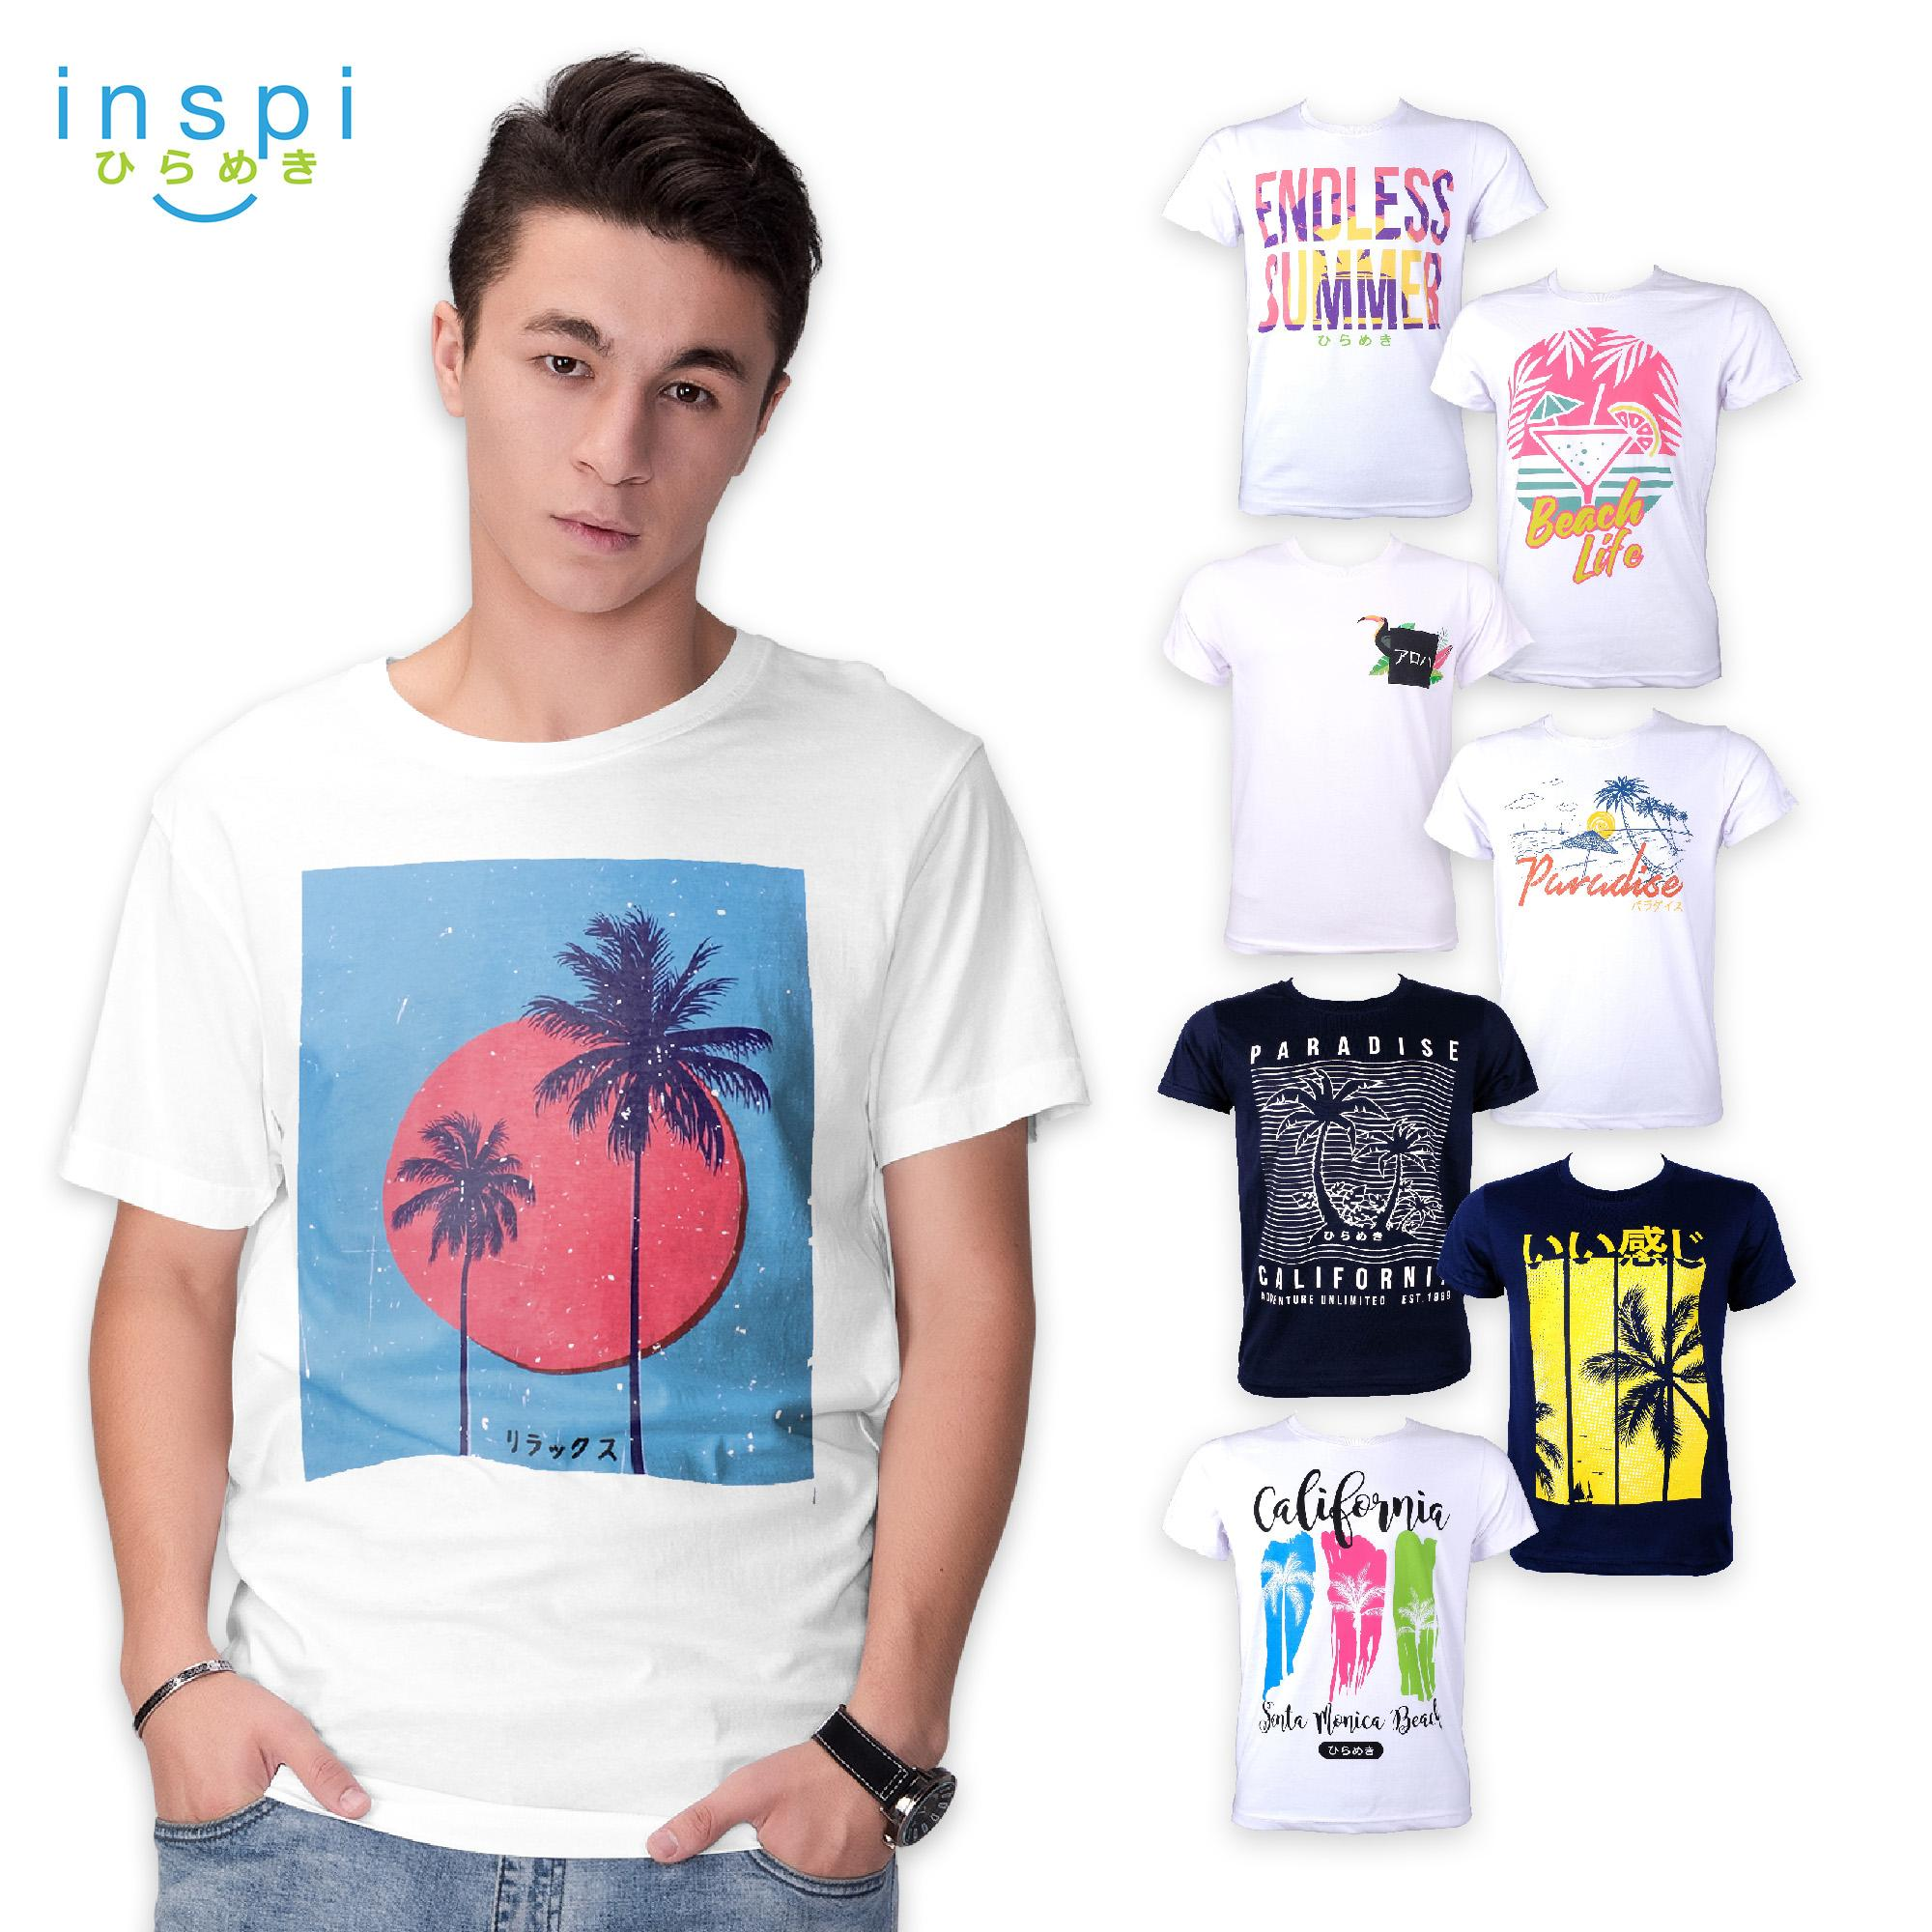 c9a7e3887db INSPI Tees Summer Collection tshirt printed graphic tee Mens t shirt shirts  for men tshirts sale